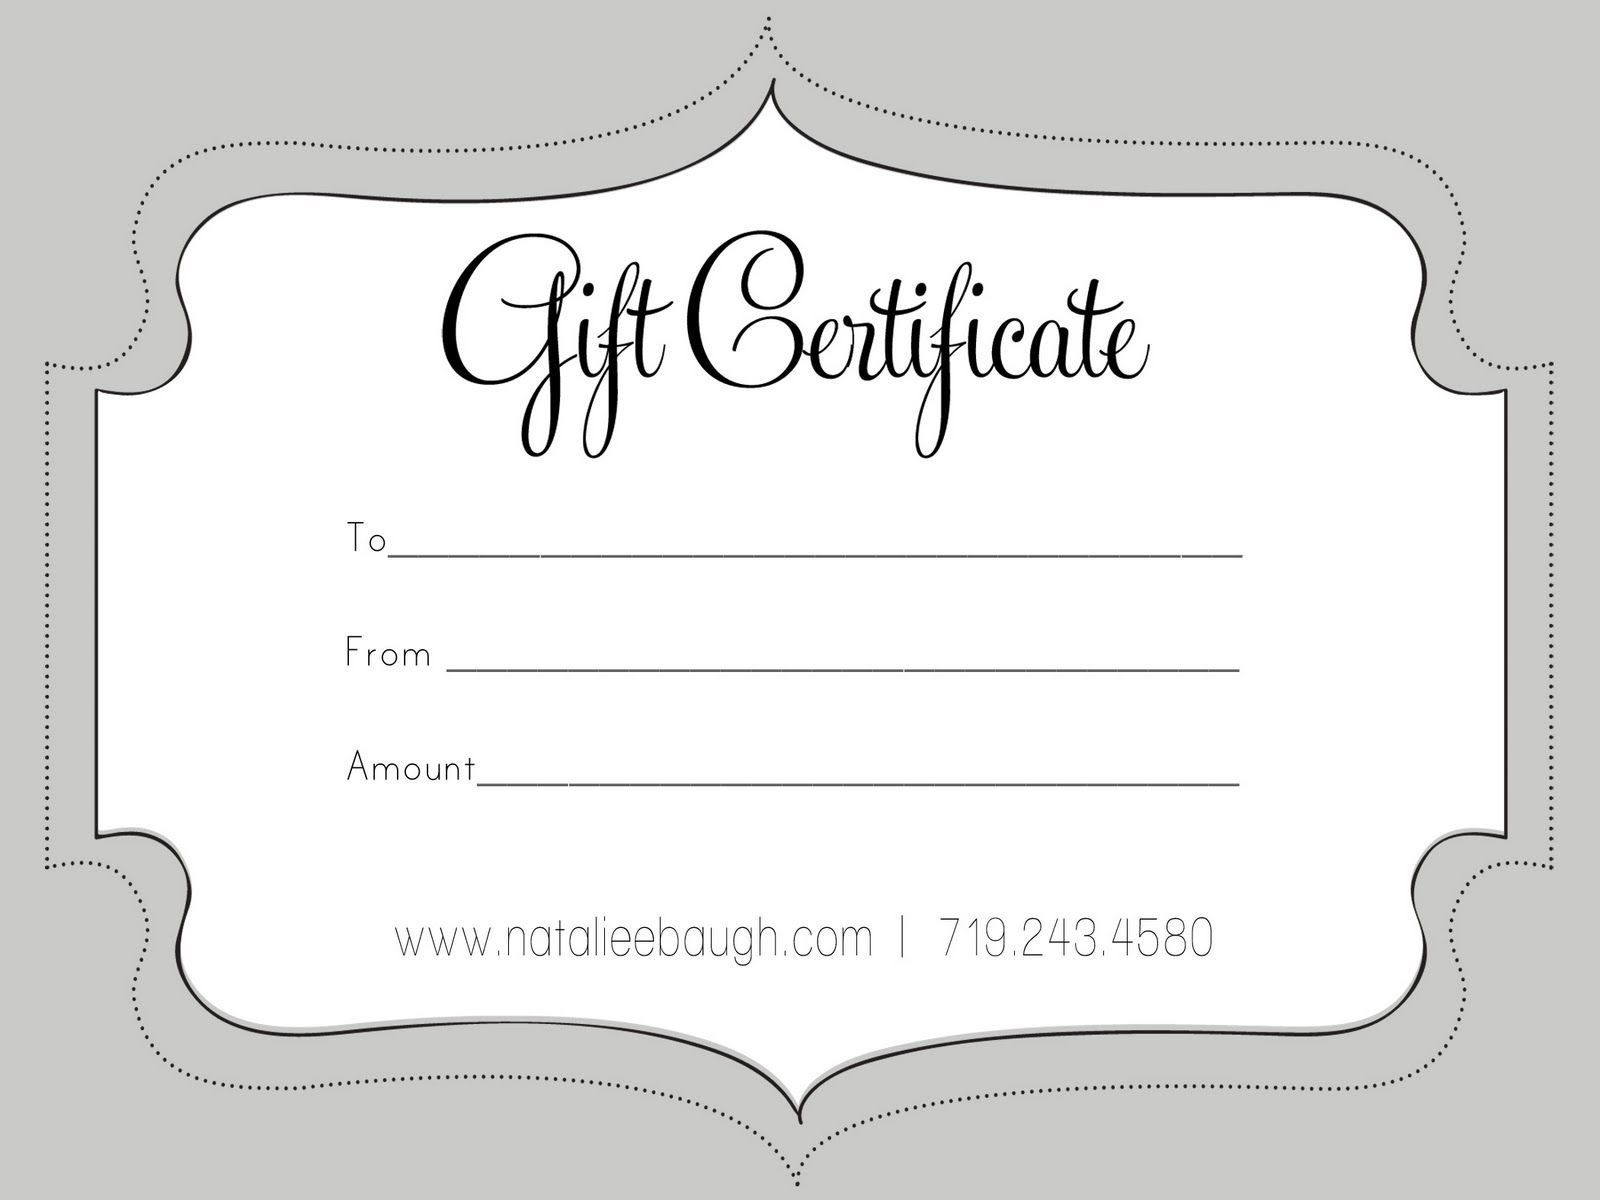 Blank Gift Certificate Template Indesign Shop In Gift Certificate Template Indesign